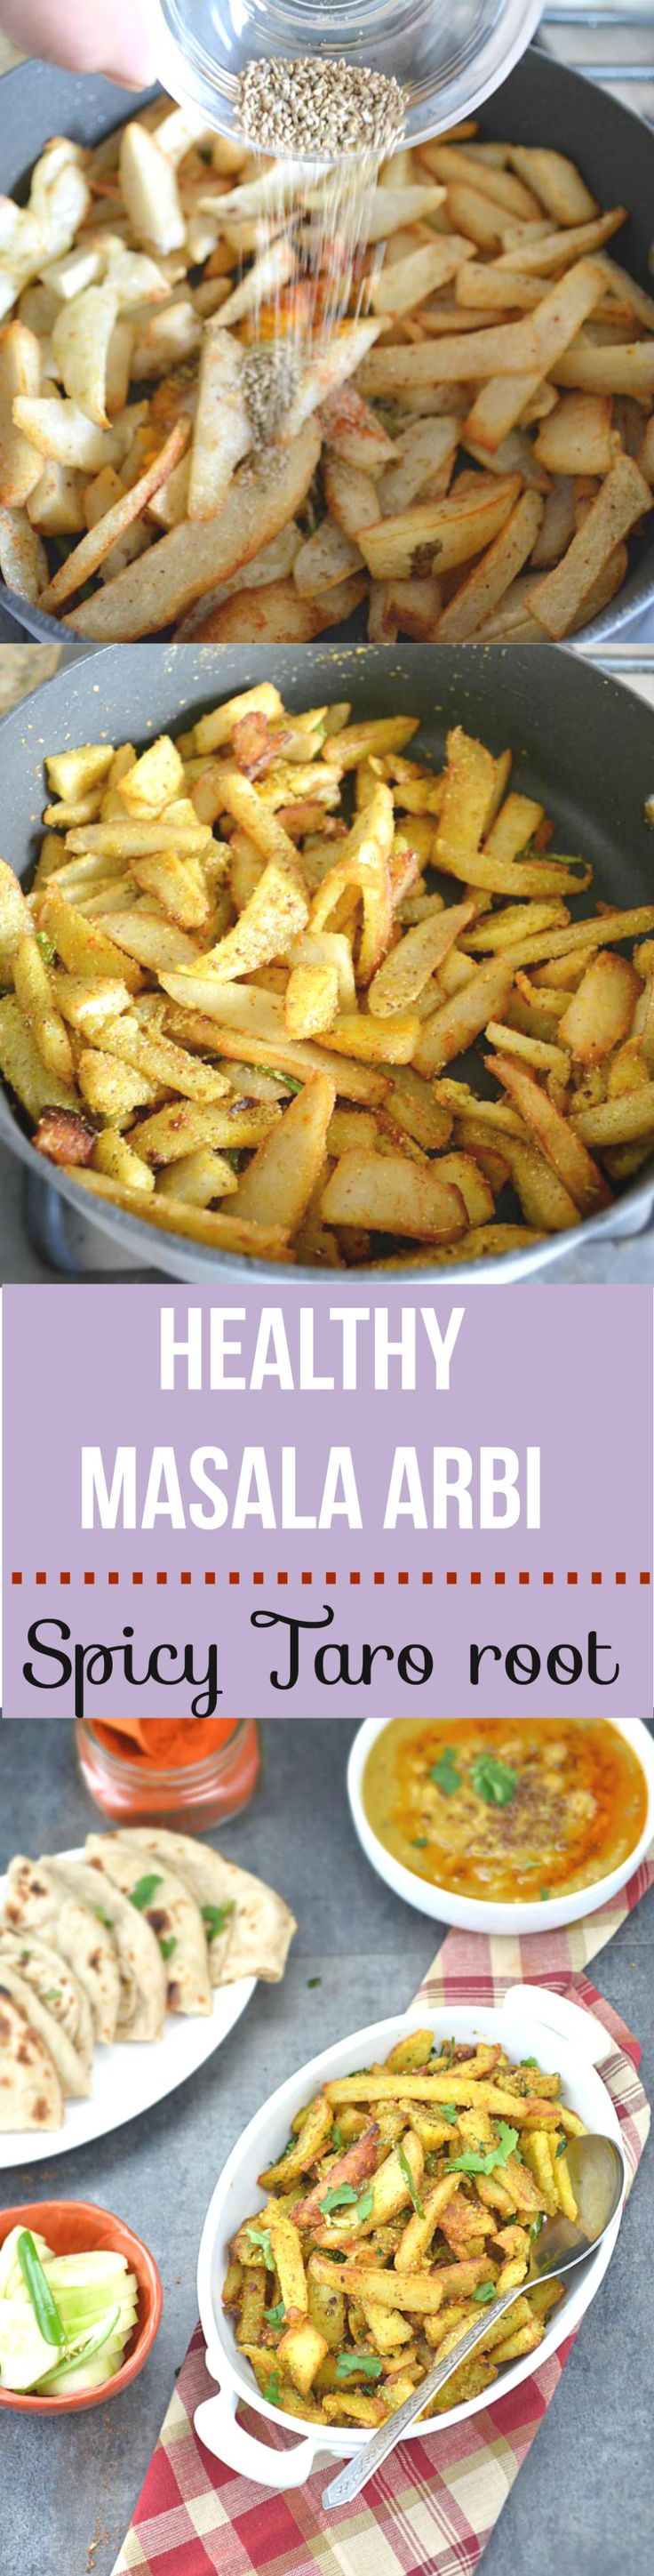 Dry Arbi Masala - Pan tossed crispy Masala Arbi. Deliciously yum and super easy to cook. Pair it with your favorite dal and create a yum dinner tonight!